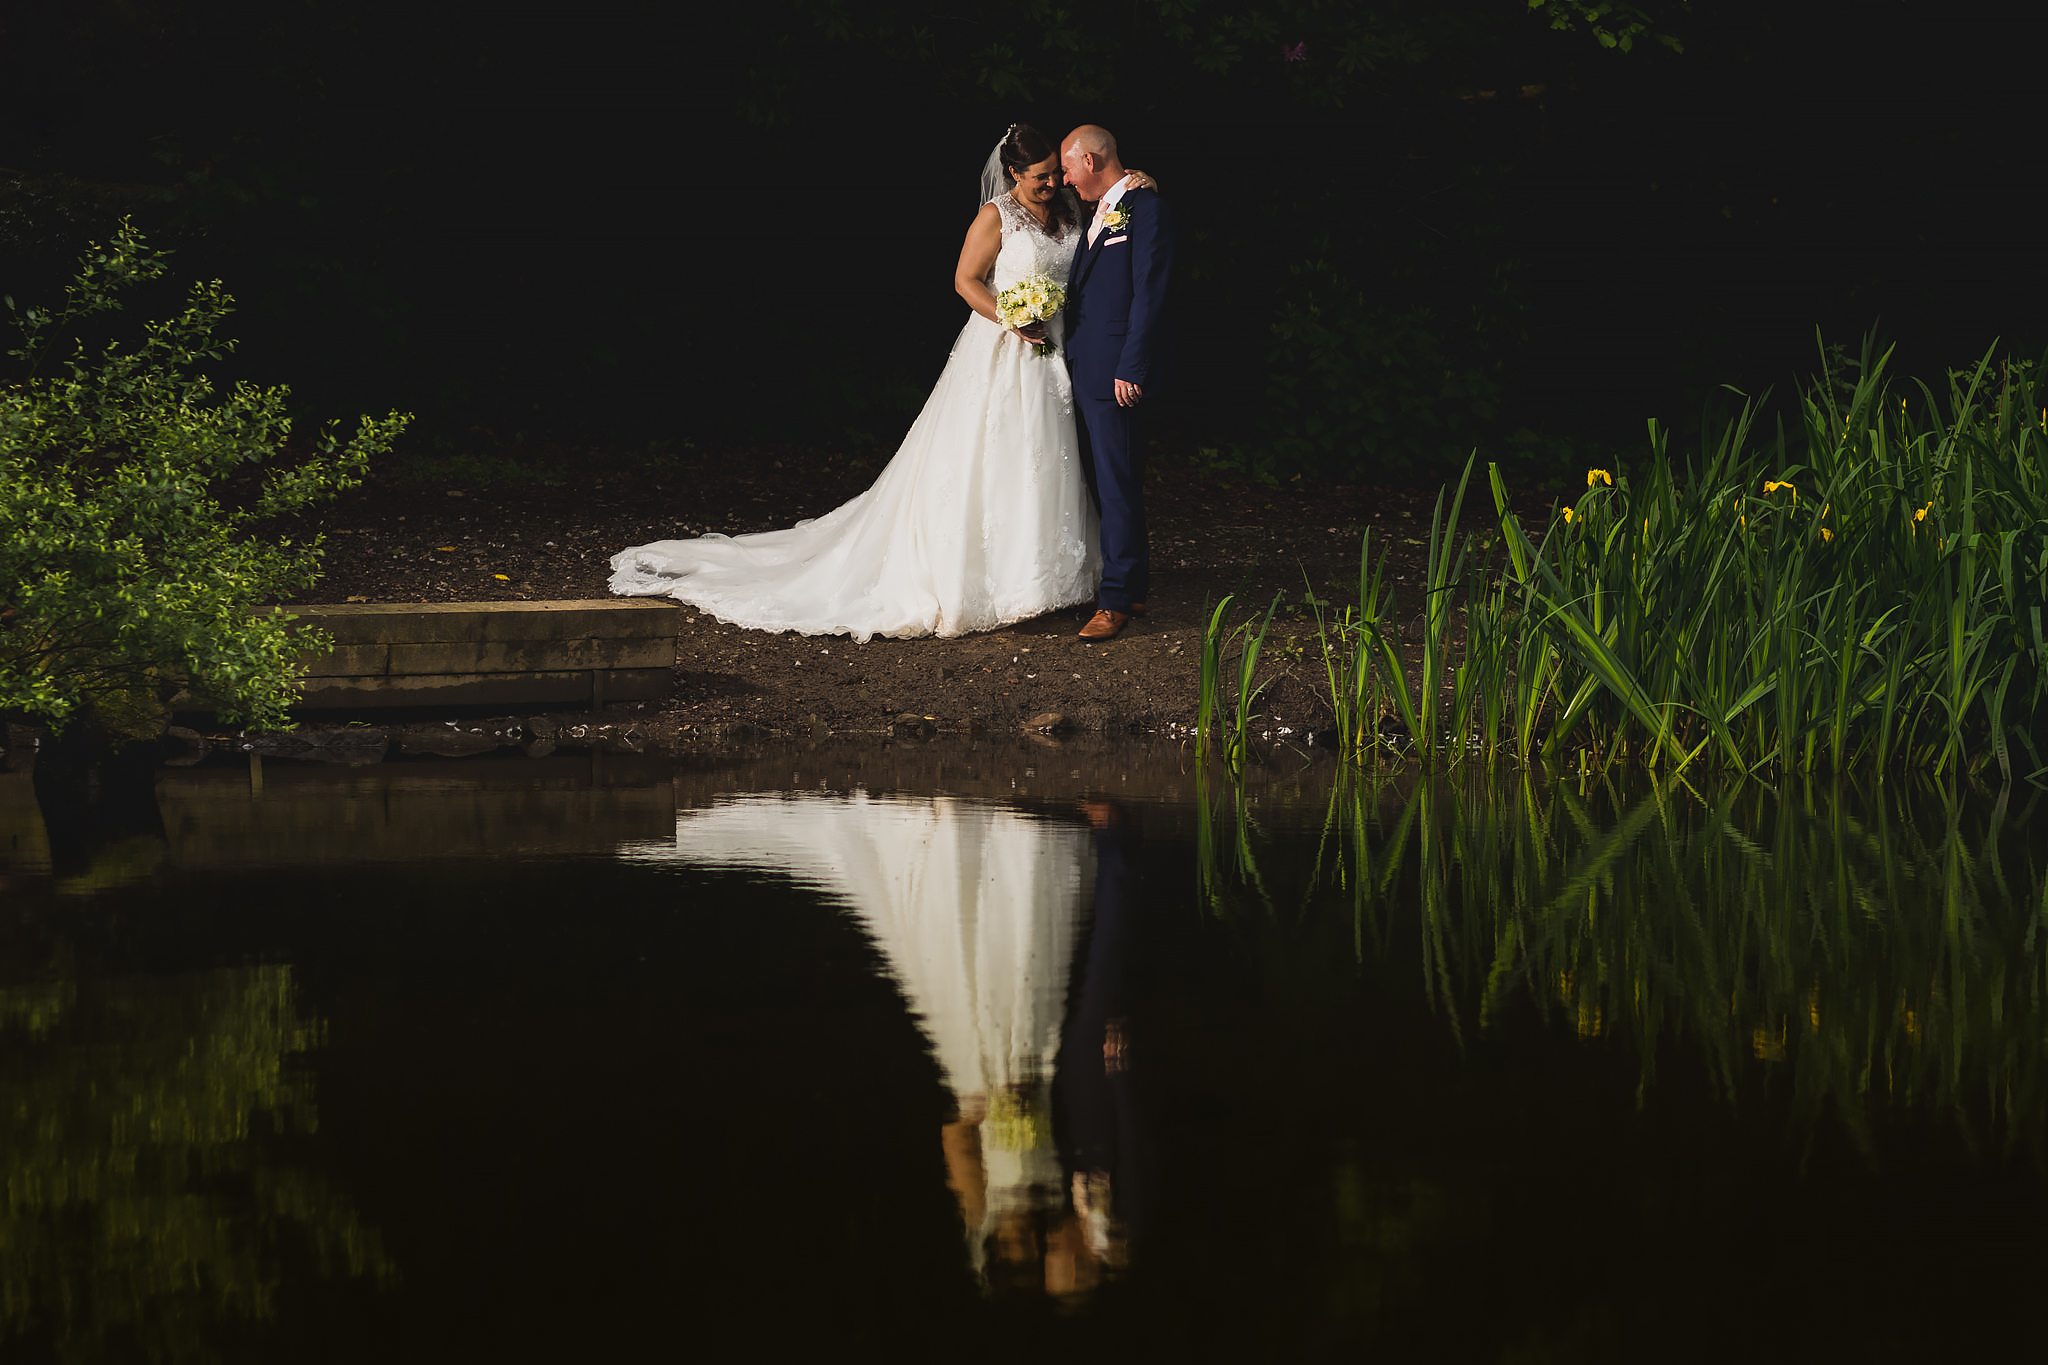 Bryngarw House wedding photography - Bride and Groom by the duck pond